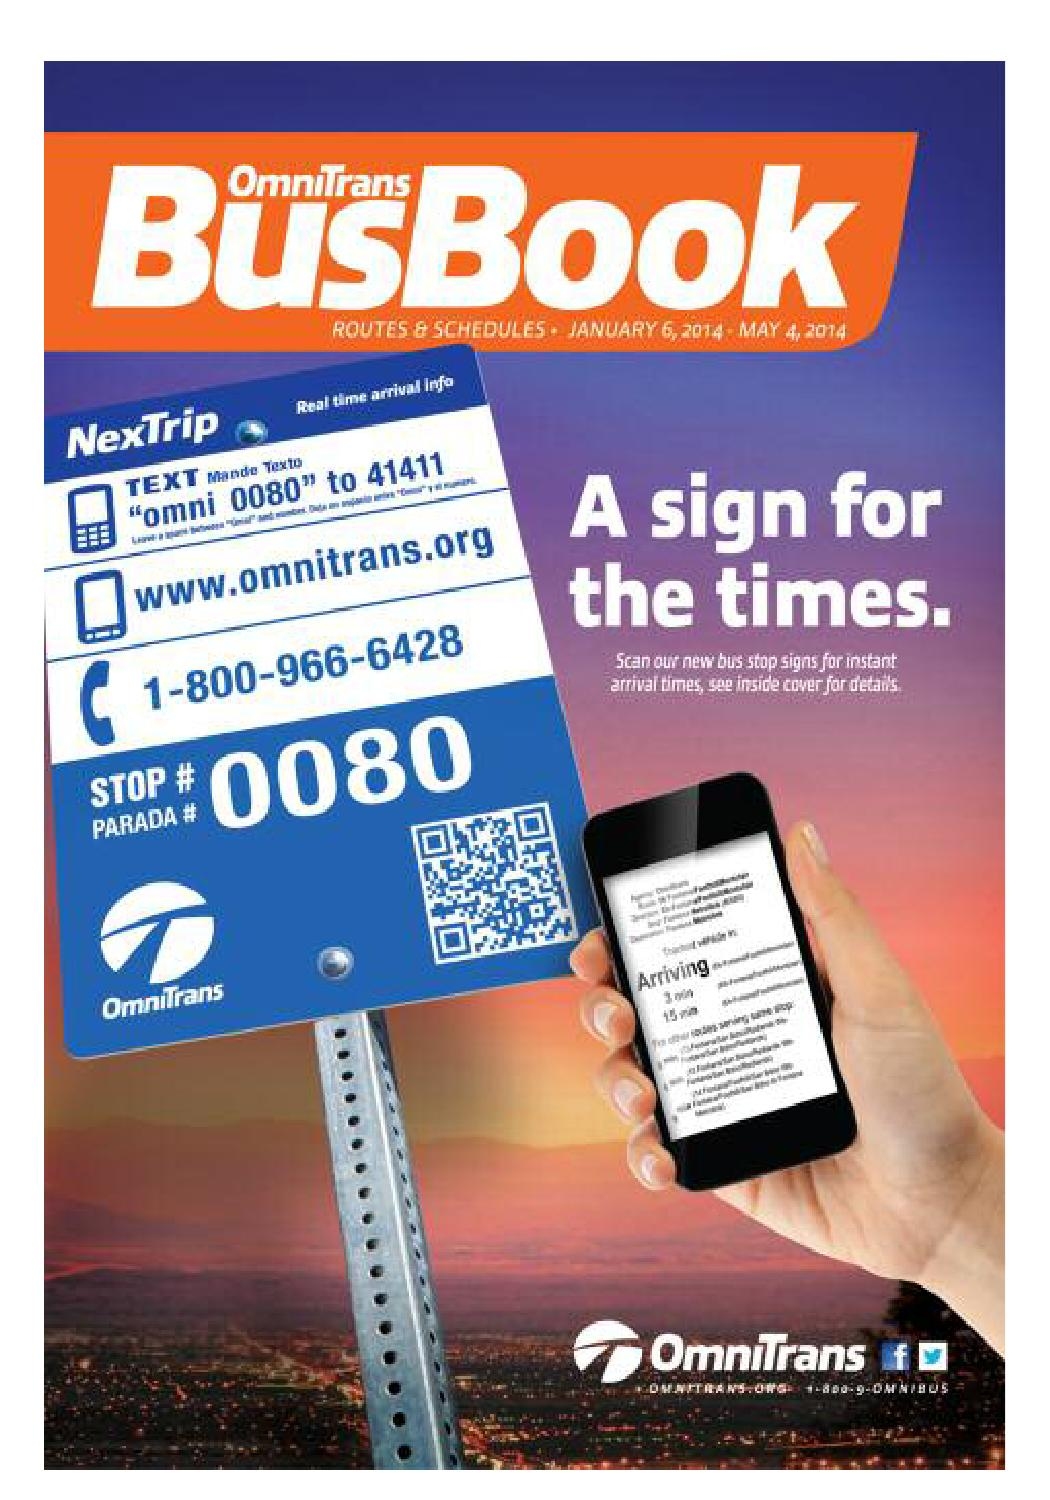 JAN 2014 Bus Book - Omnitrans by Omnitrans - issuu